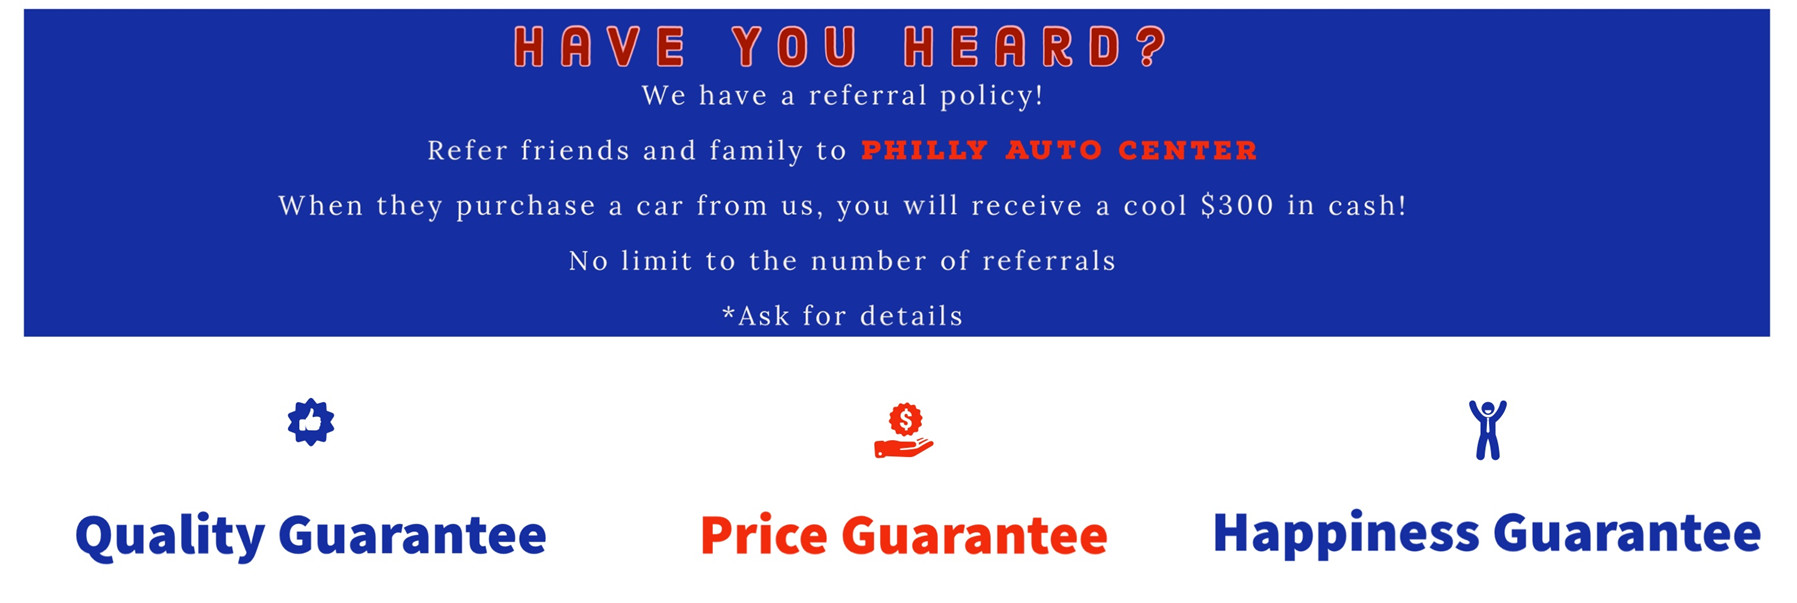 Philly Auto Center Referral Policy for used car purchases